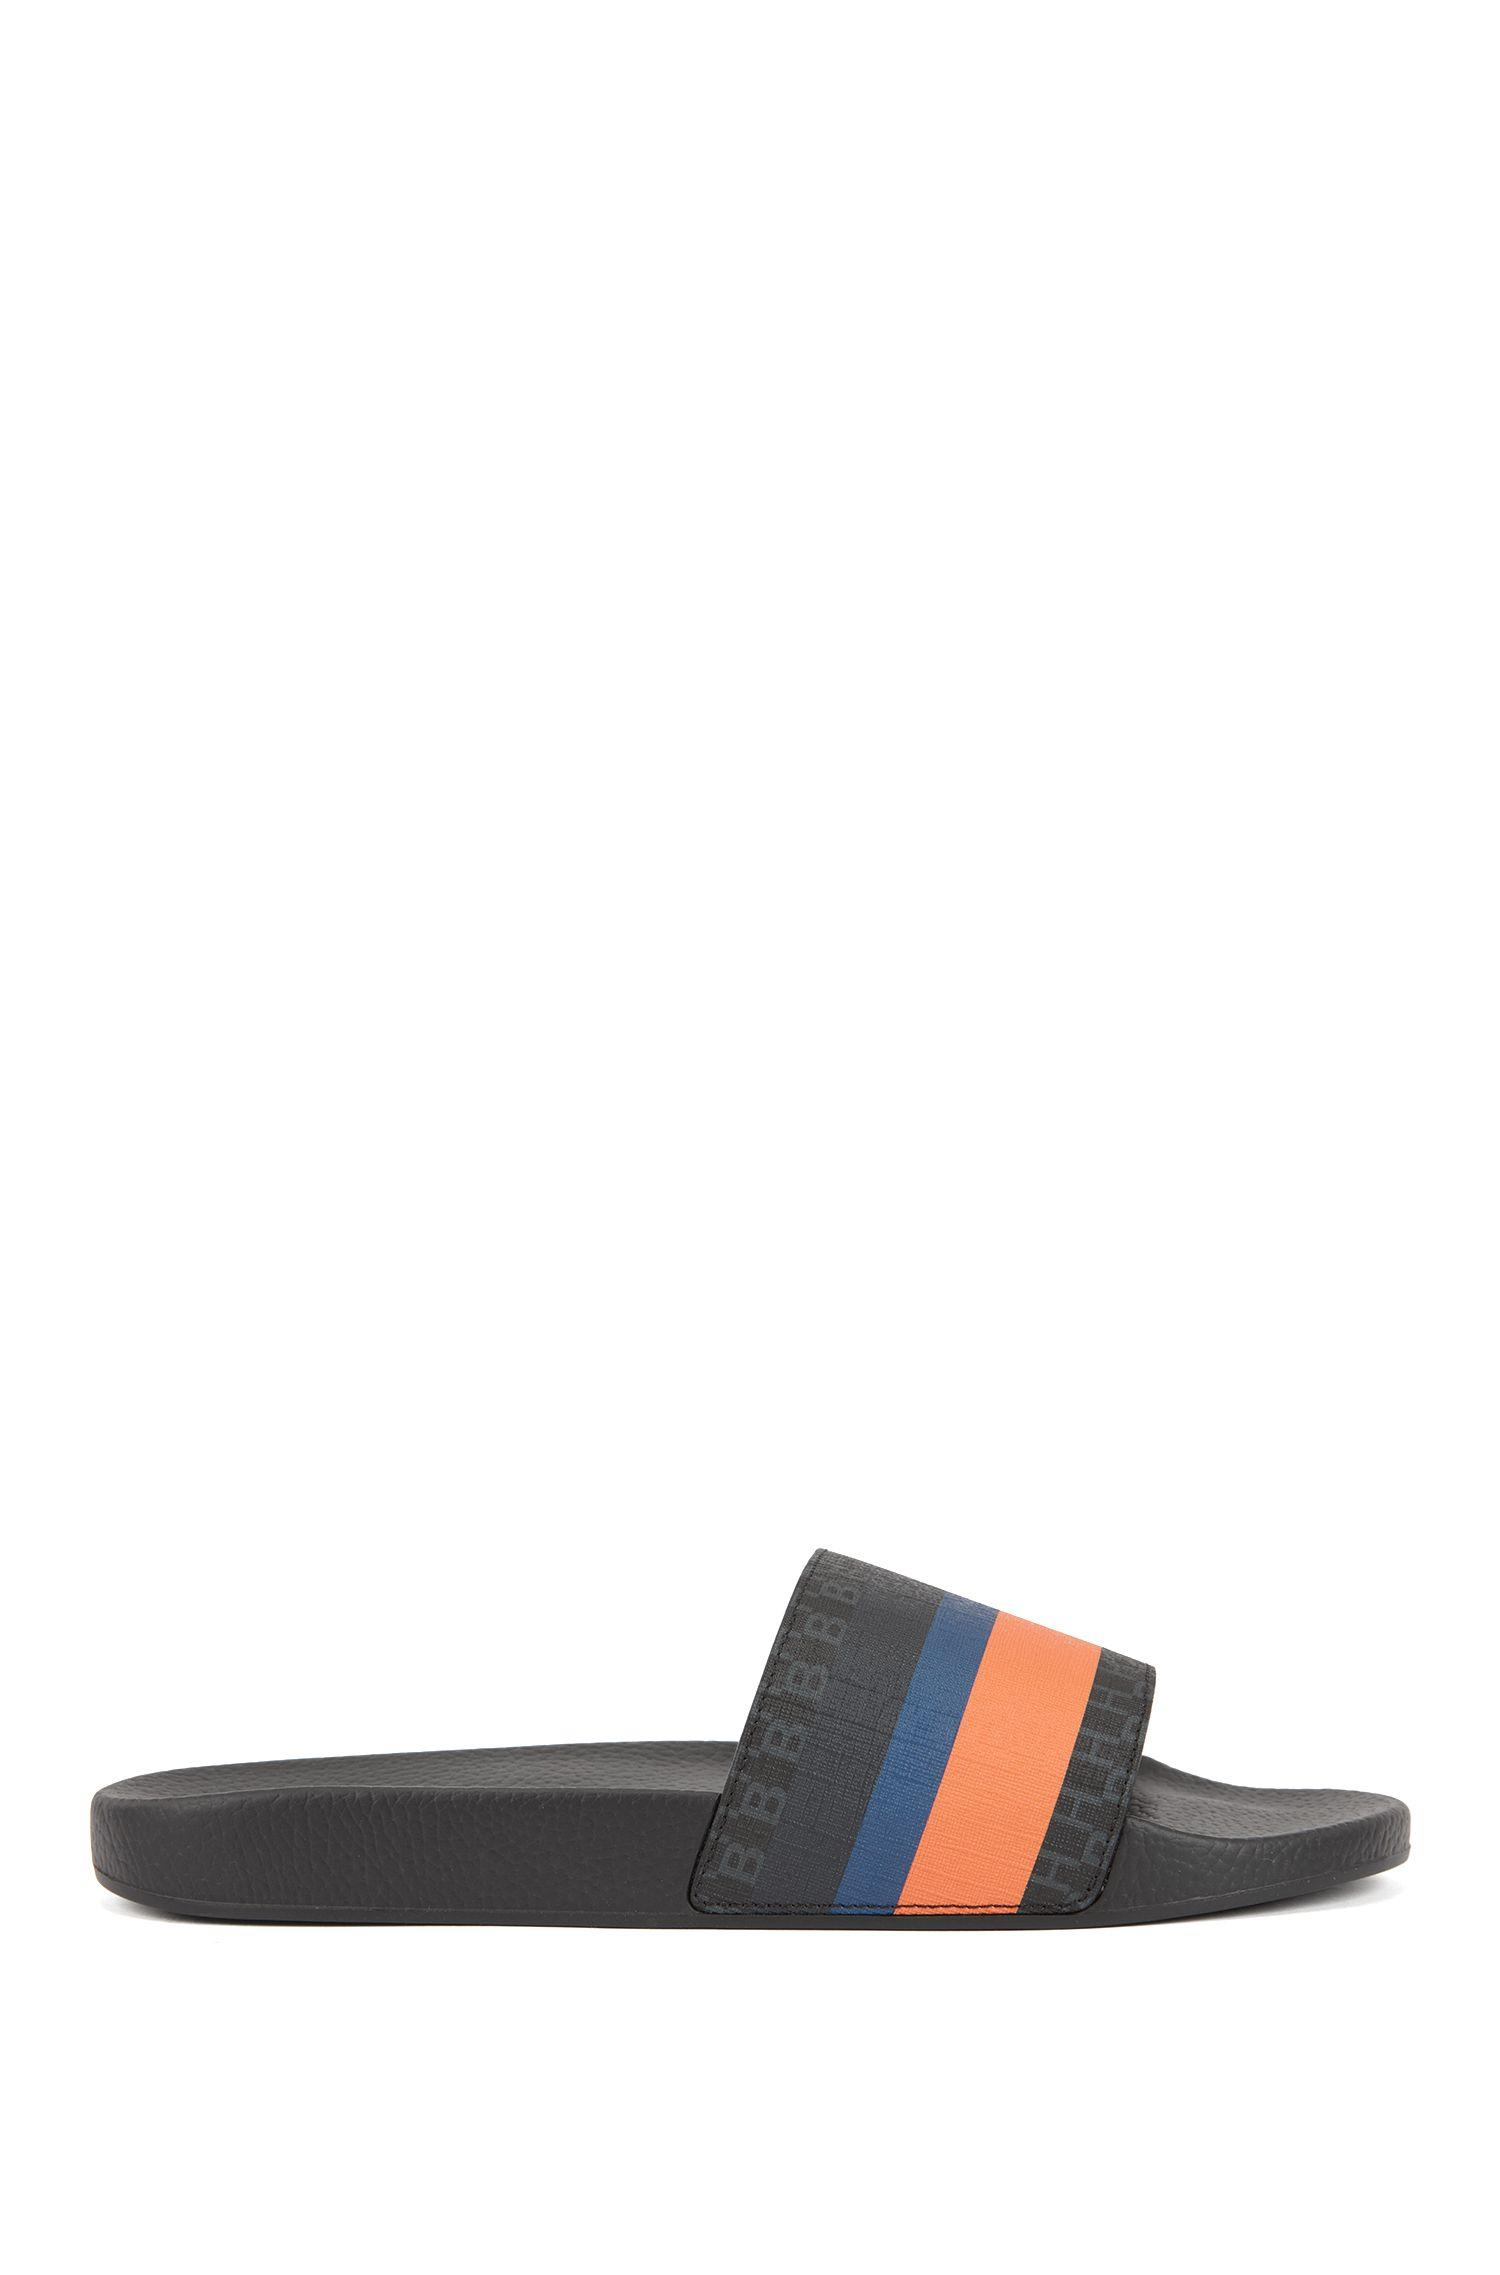 7a25a454e26a Boss Slider Sandals With Monogram Strap And Calf-leather Lining in ...